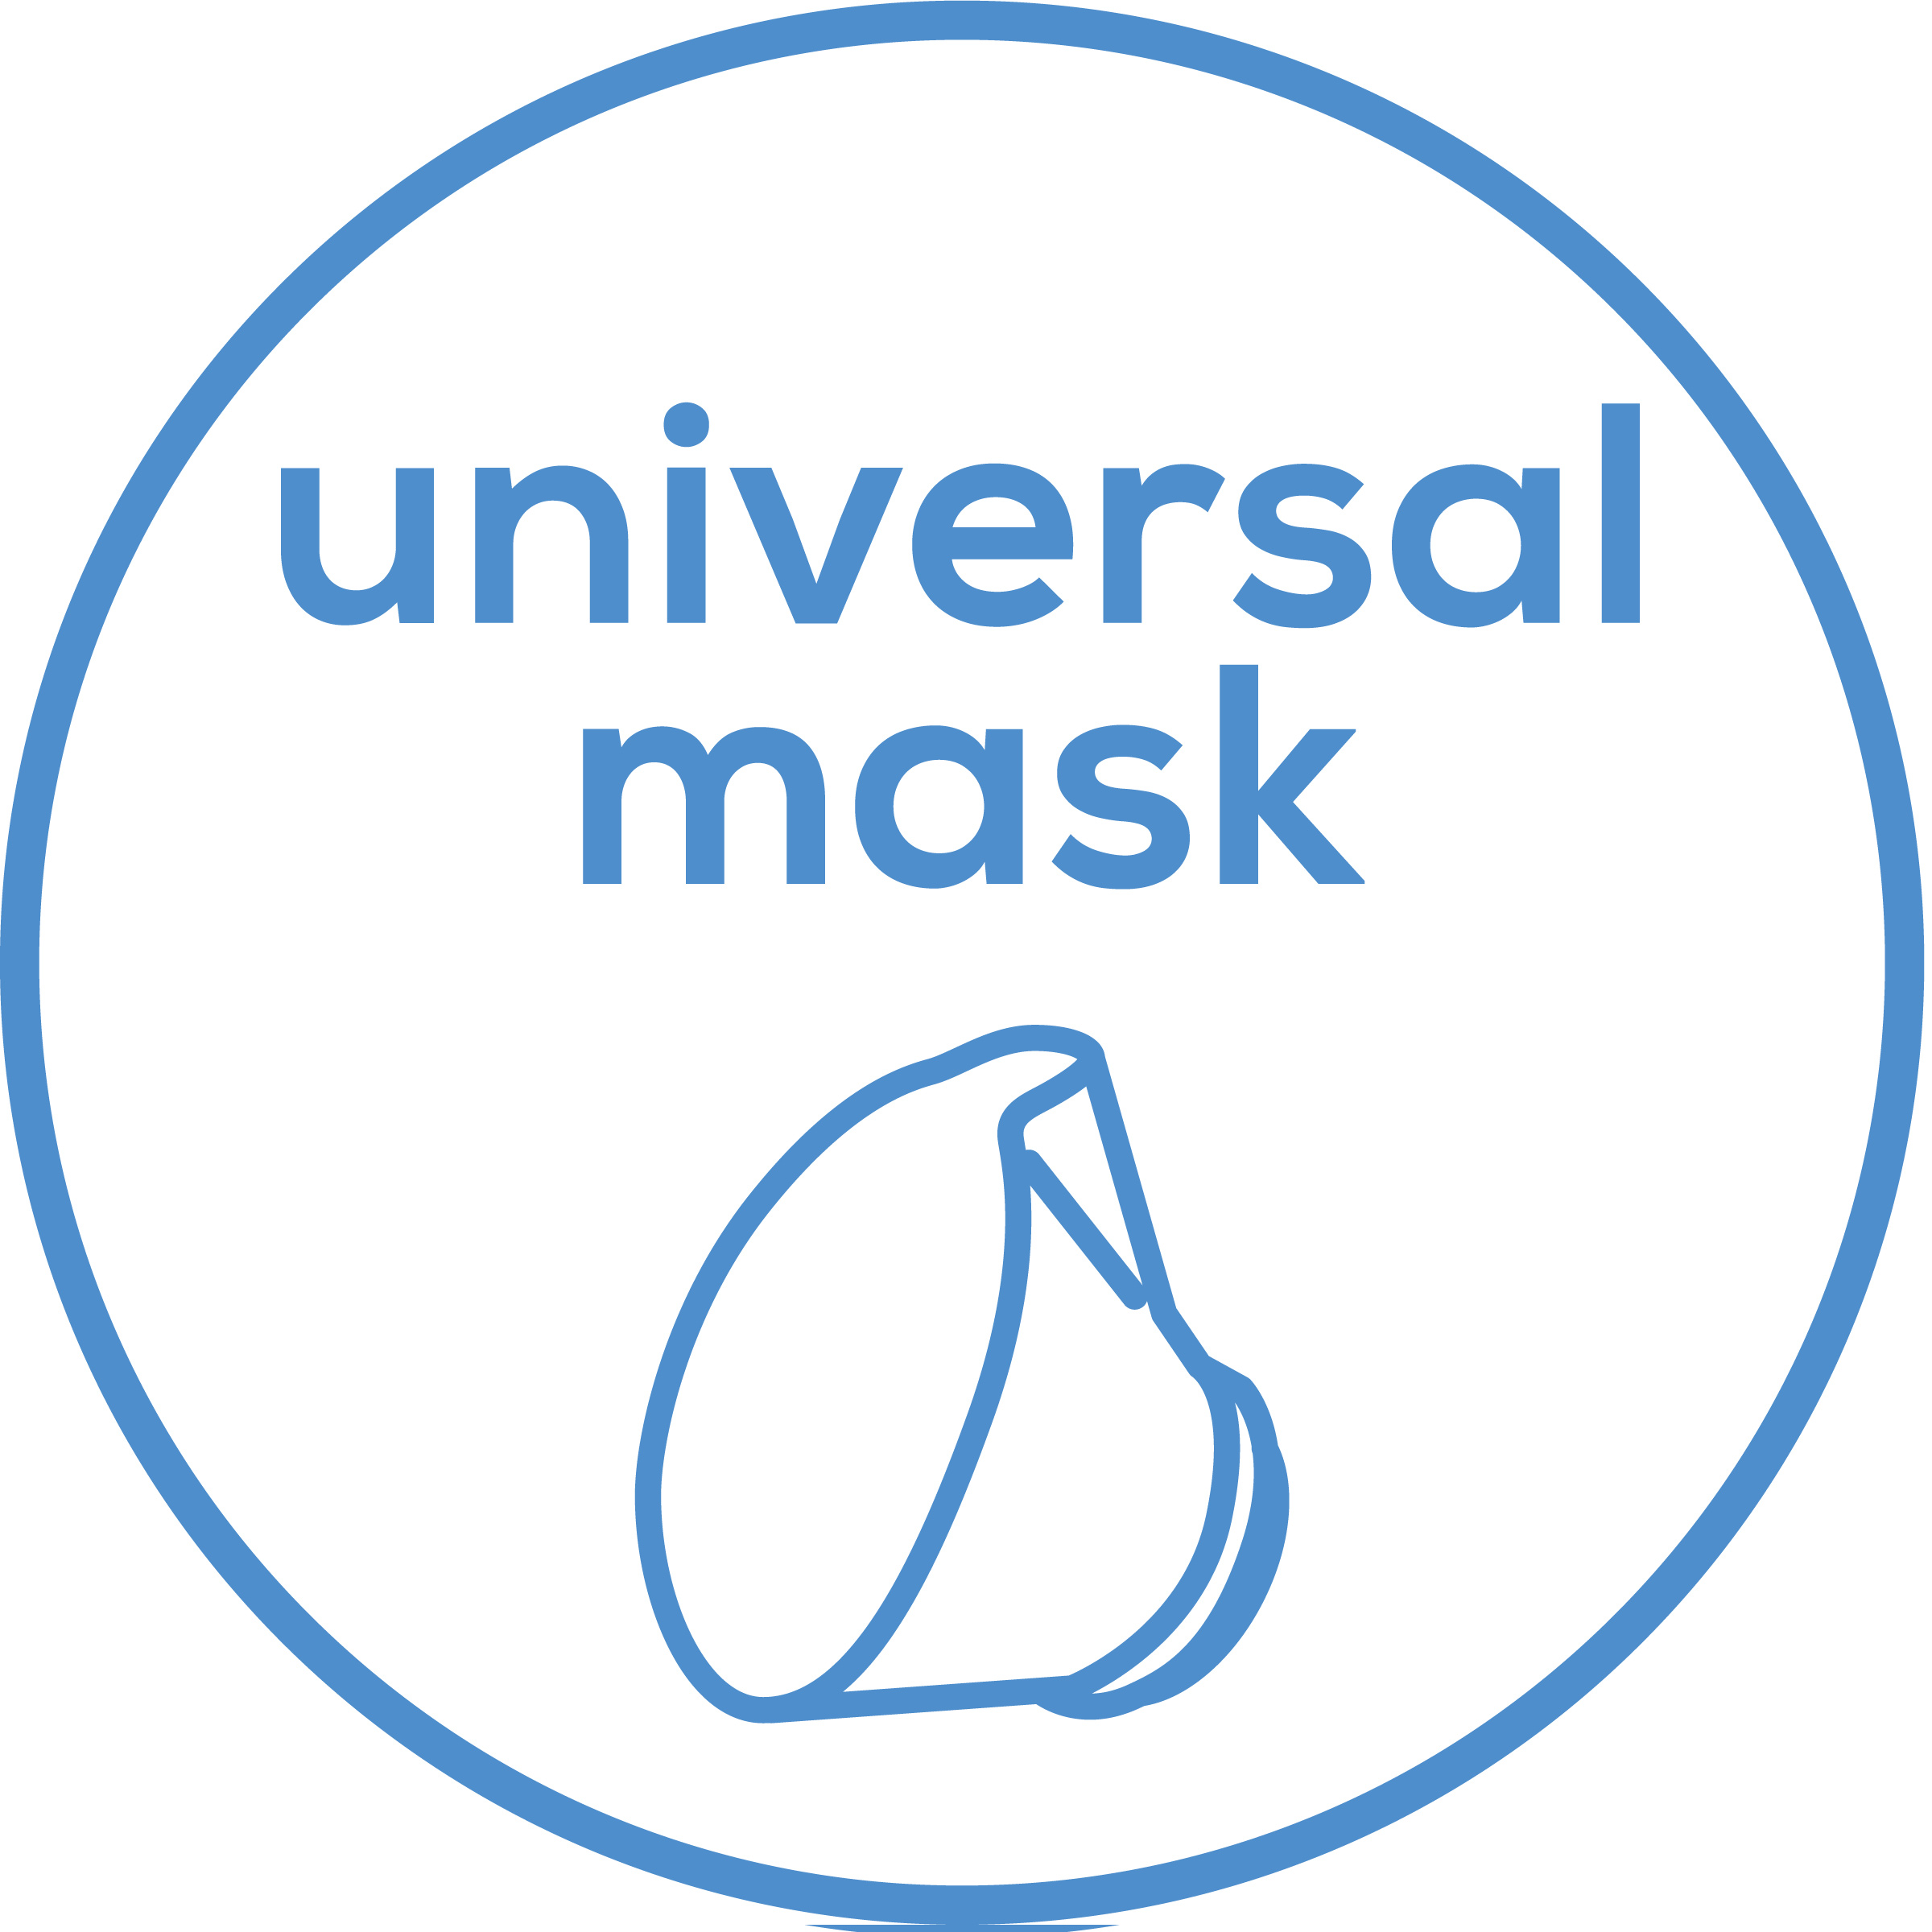 Accessories Includes flexible universal mask for the mouth and nose